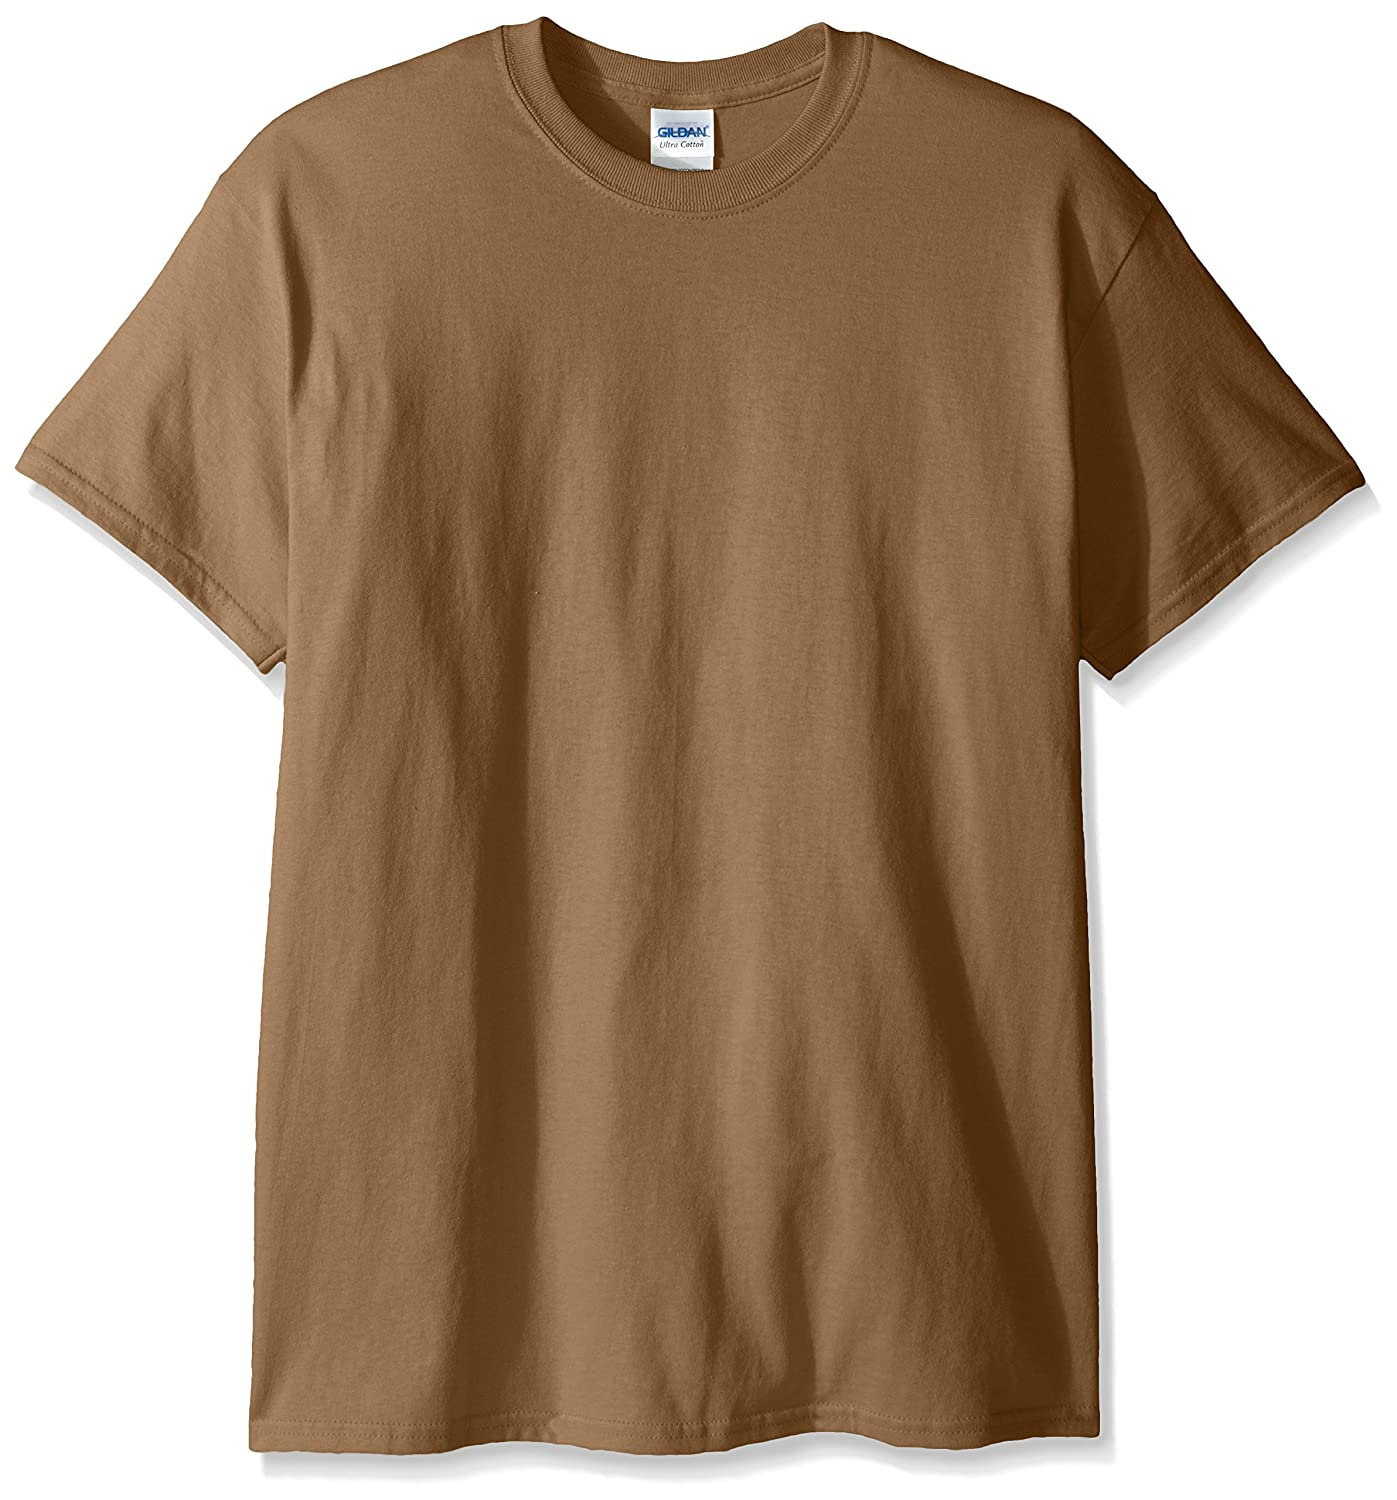 b4a22a3776c Amazon.com  Gildan Men s Ultra Cotton Tee Extended Sizes  Clothing